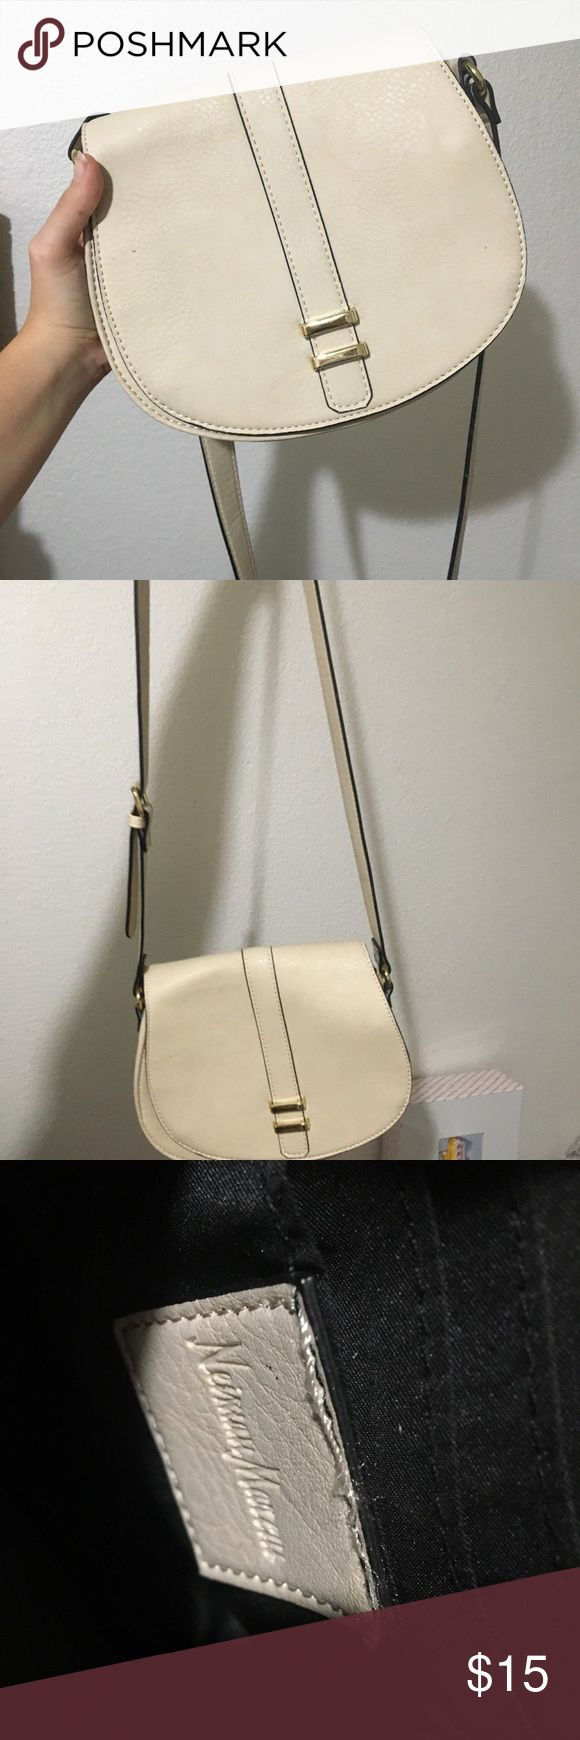 Vintage Neman Marcus purse Tan side bag vintage flaw shown on the last picture Bags Crossbody Bags